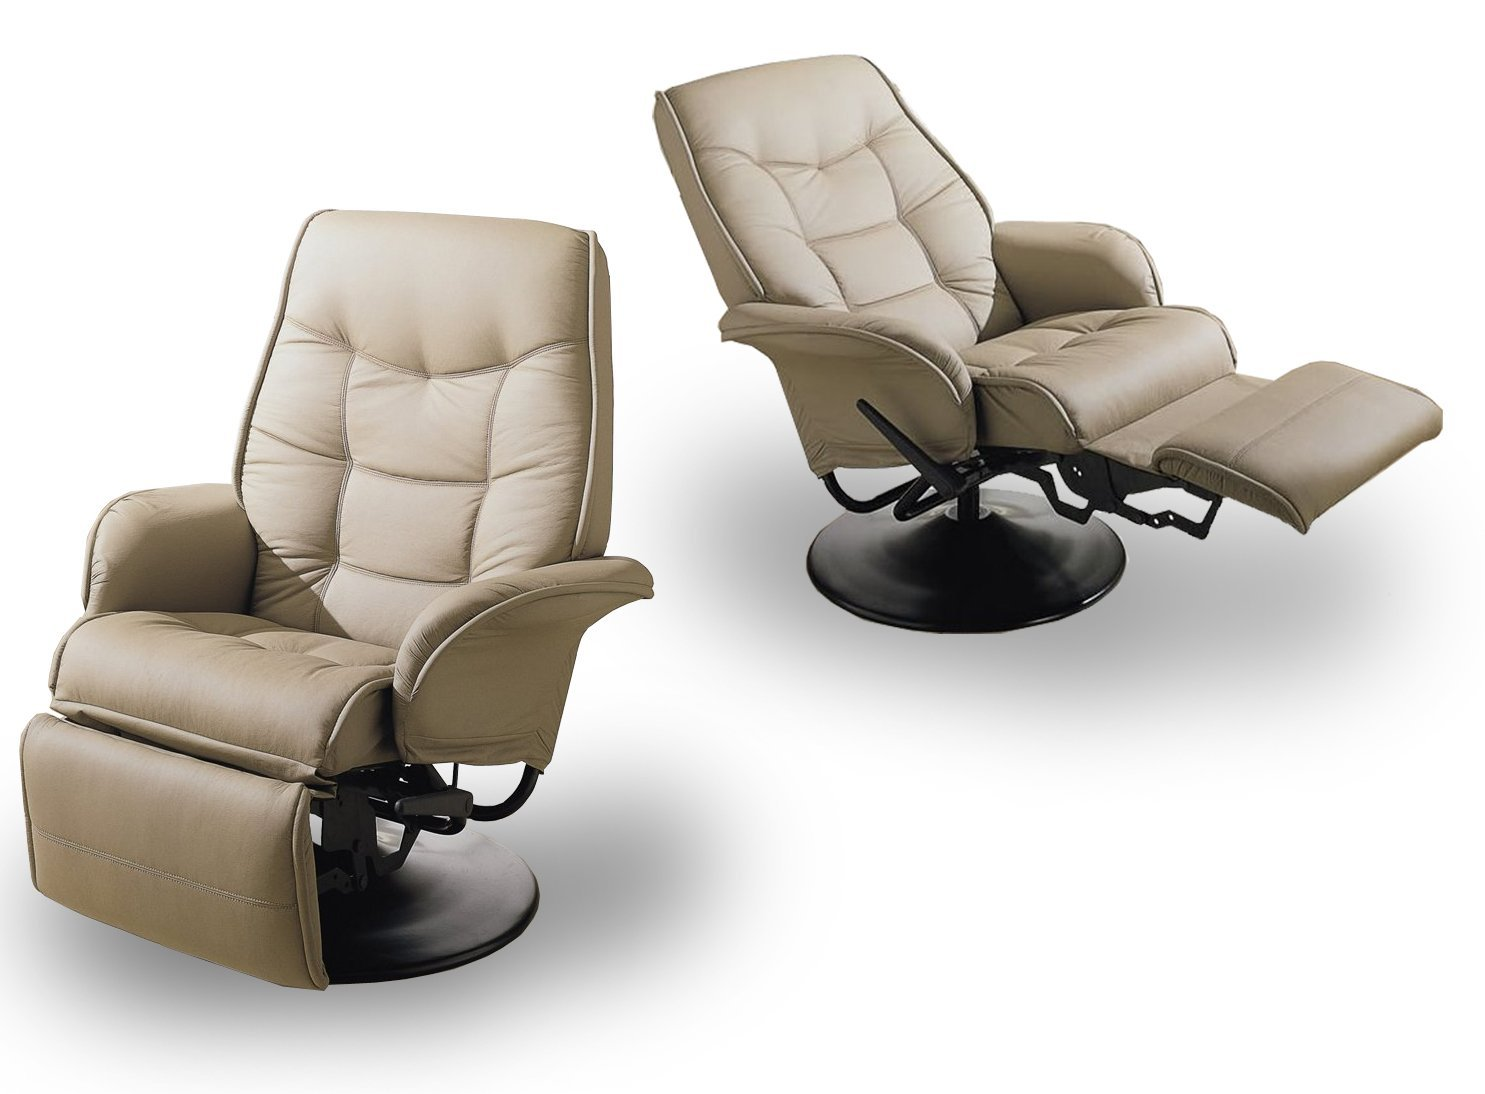 product recliner download high resolution email recliners flexsteel duty a heavy dl share com via image